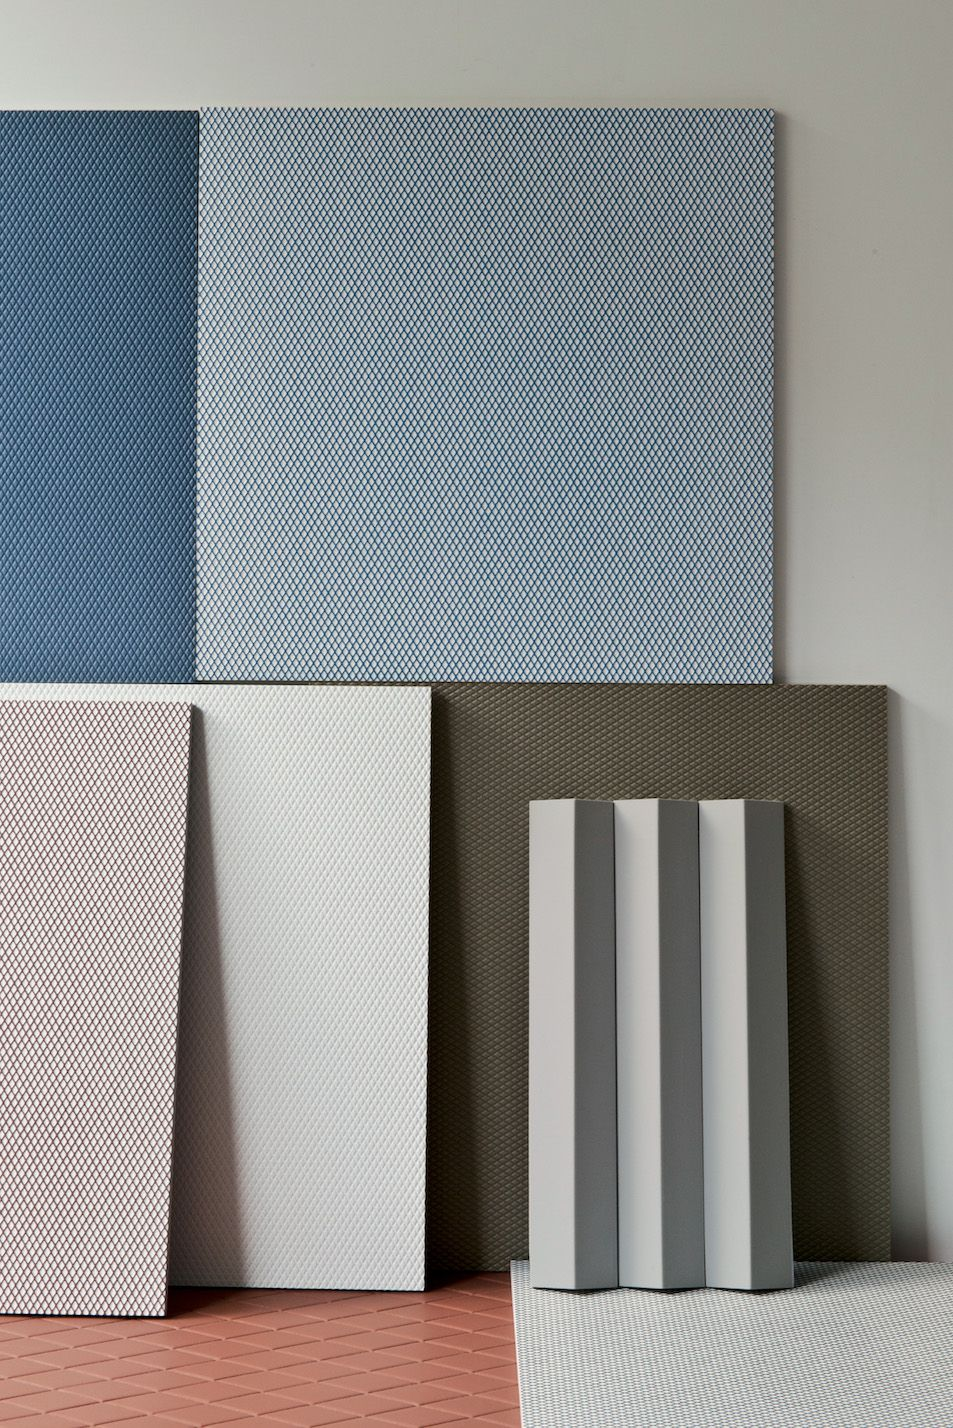 Rombini See More At Our Brisbane And Sunshine Coast Showrooms Www Acestone Com Au Tiles Ceramic Tiles Wall Tiles